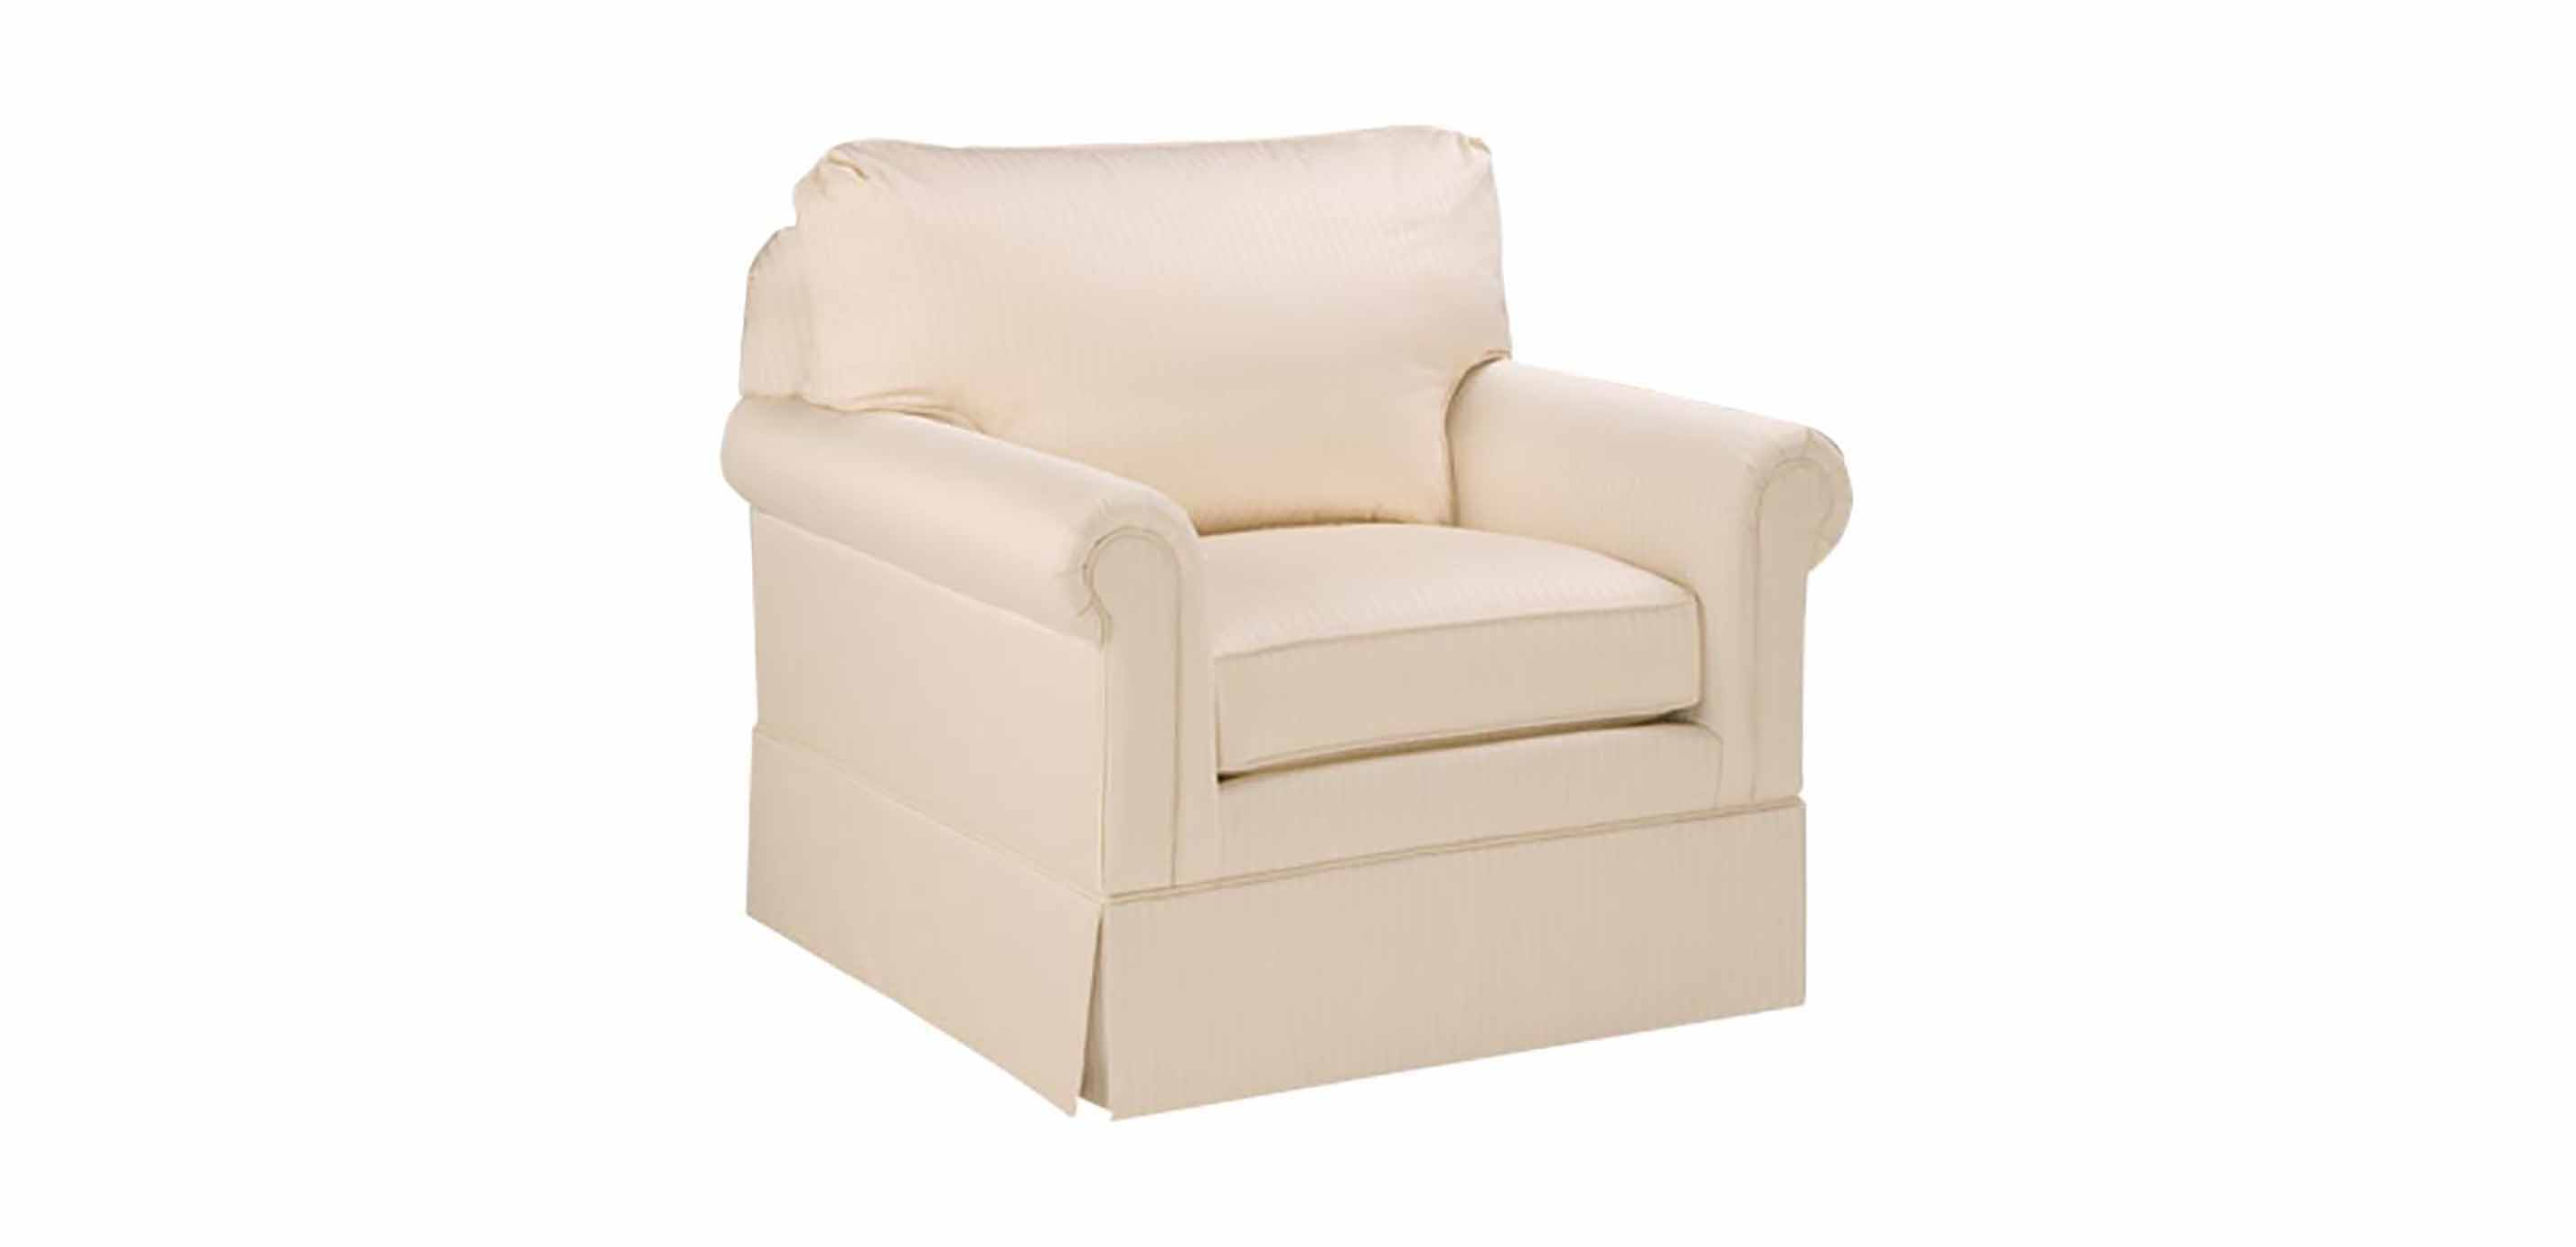 paramount sofa ethan allen cheap corner beds with storage panel arm swivel chair chairs chaises